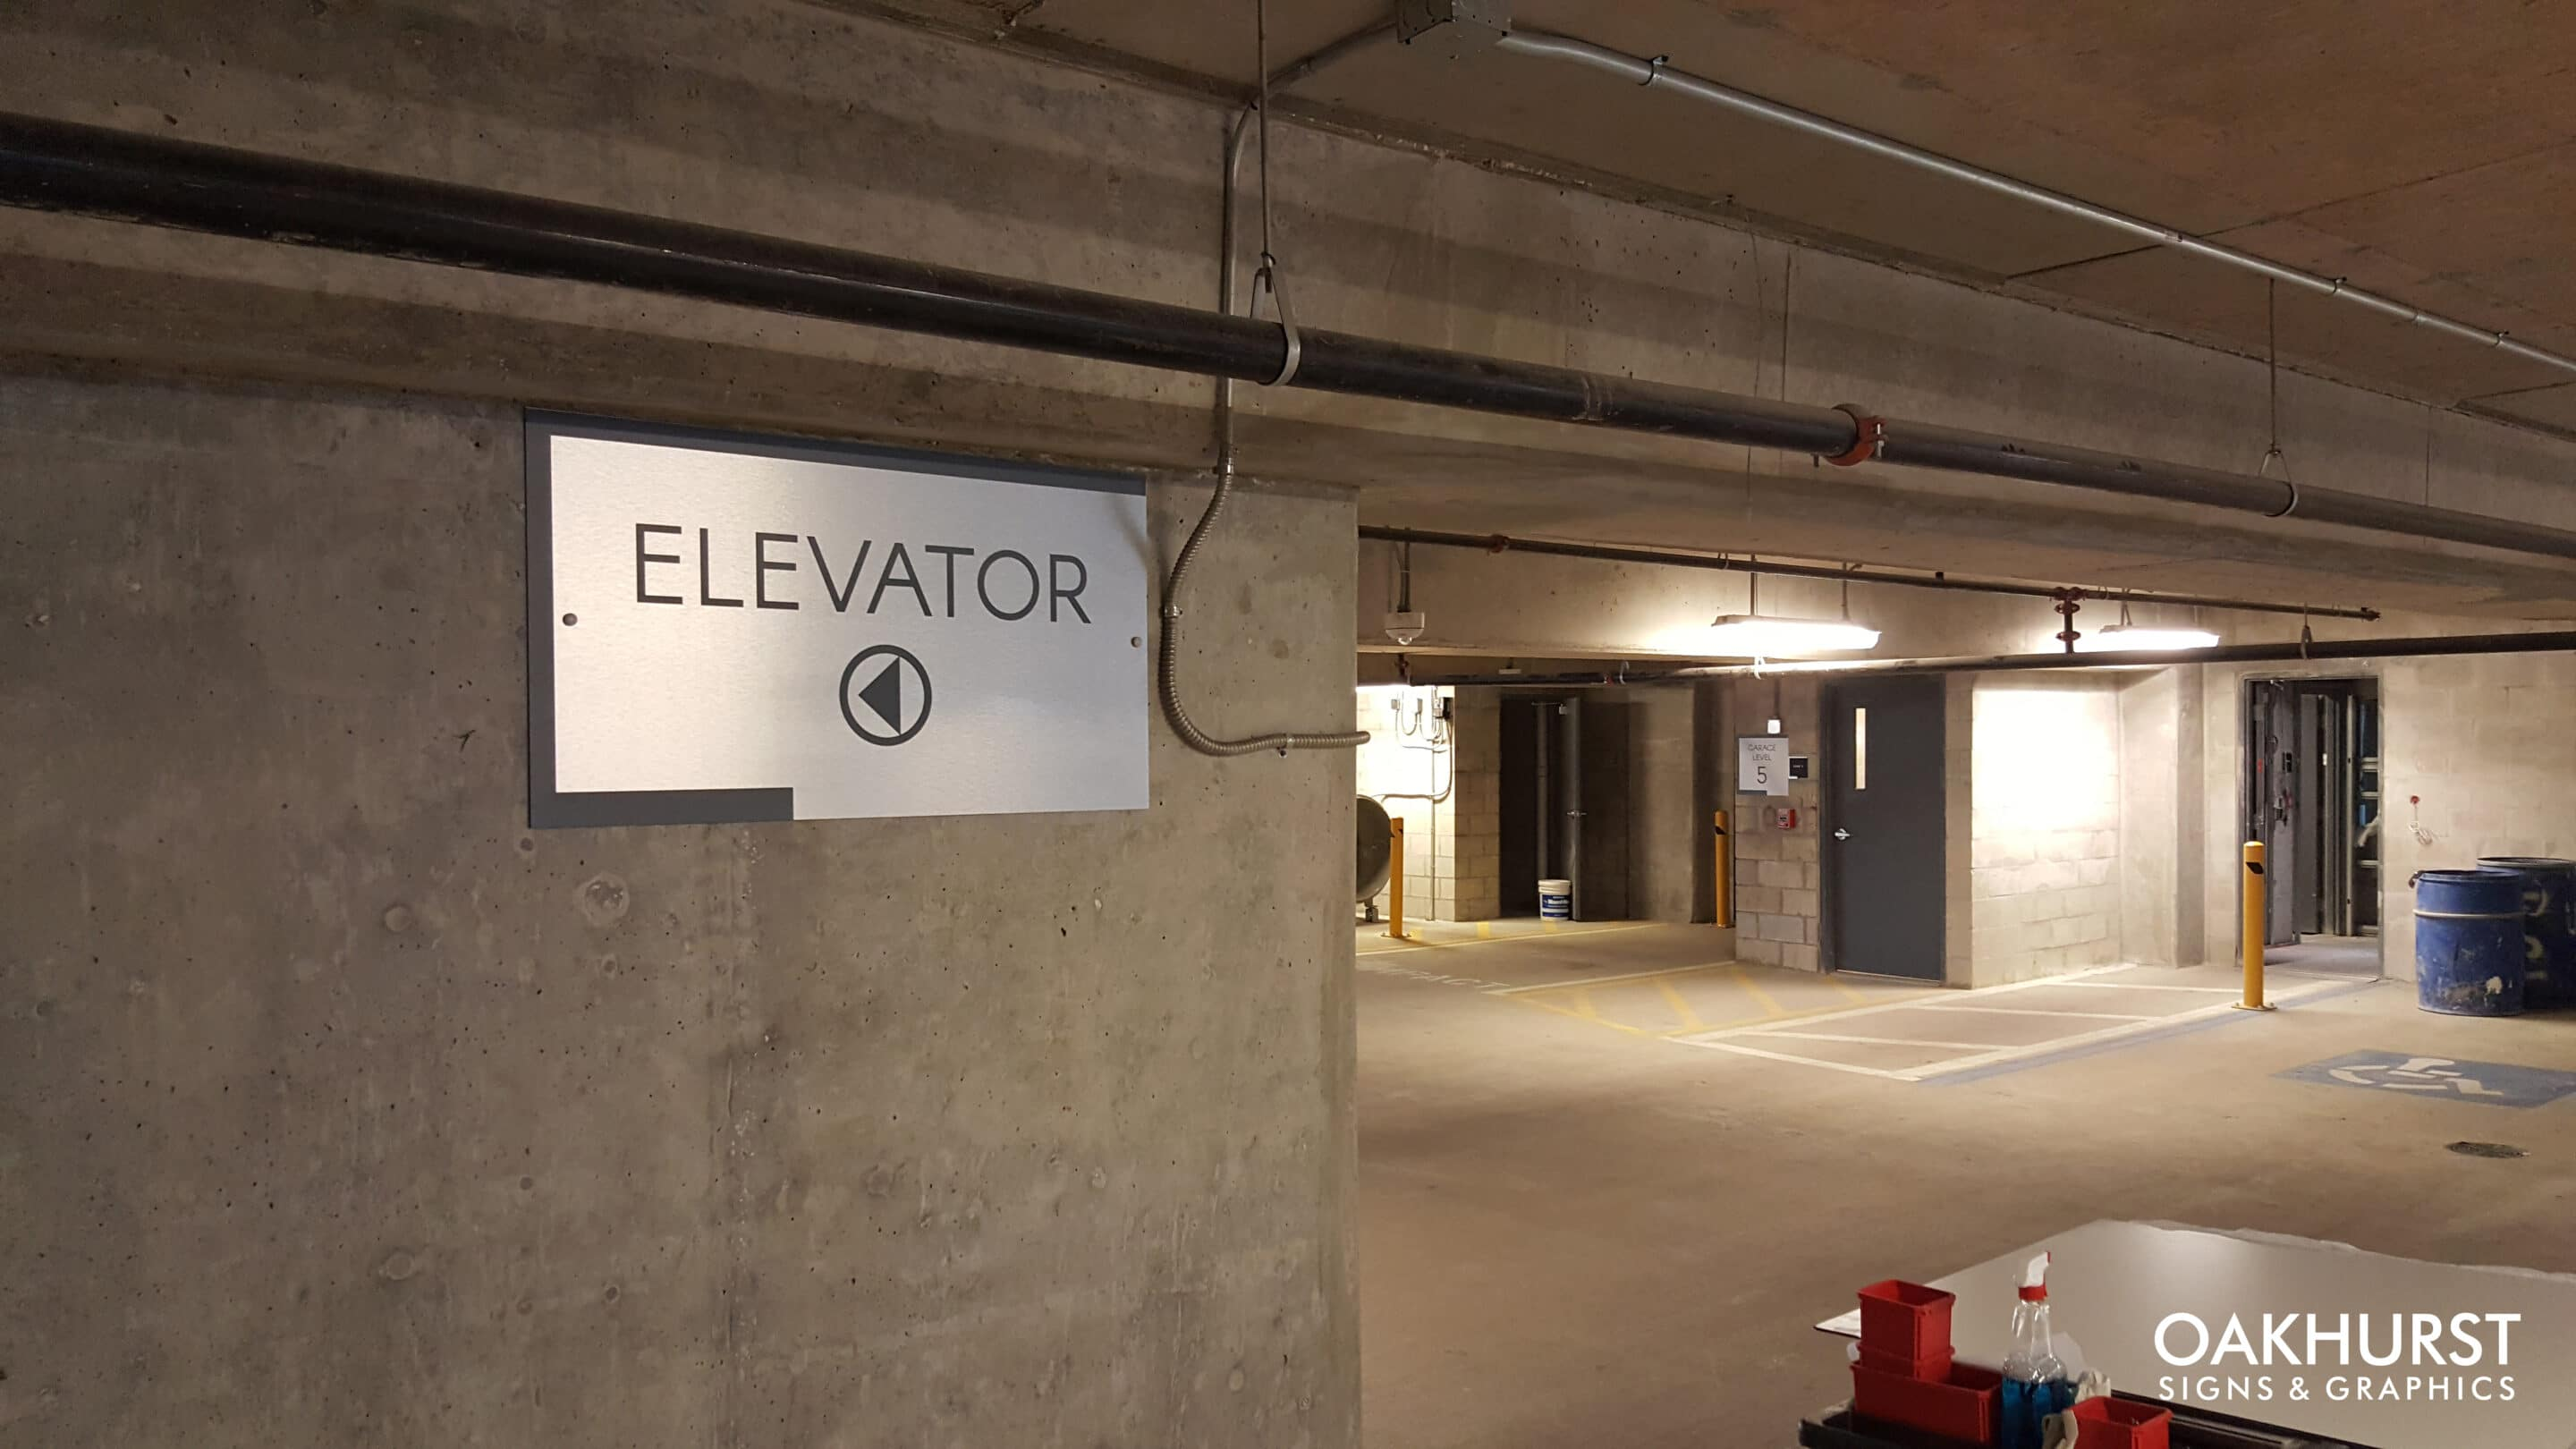 Altis elevator sign in parking structure